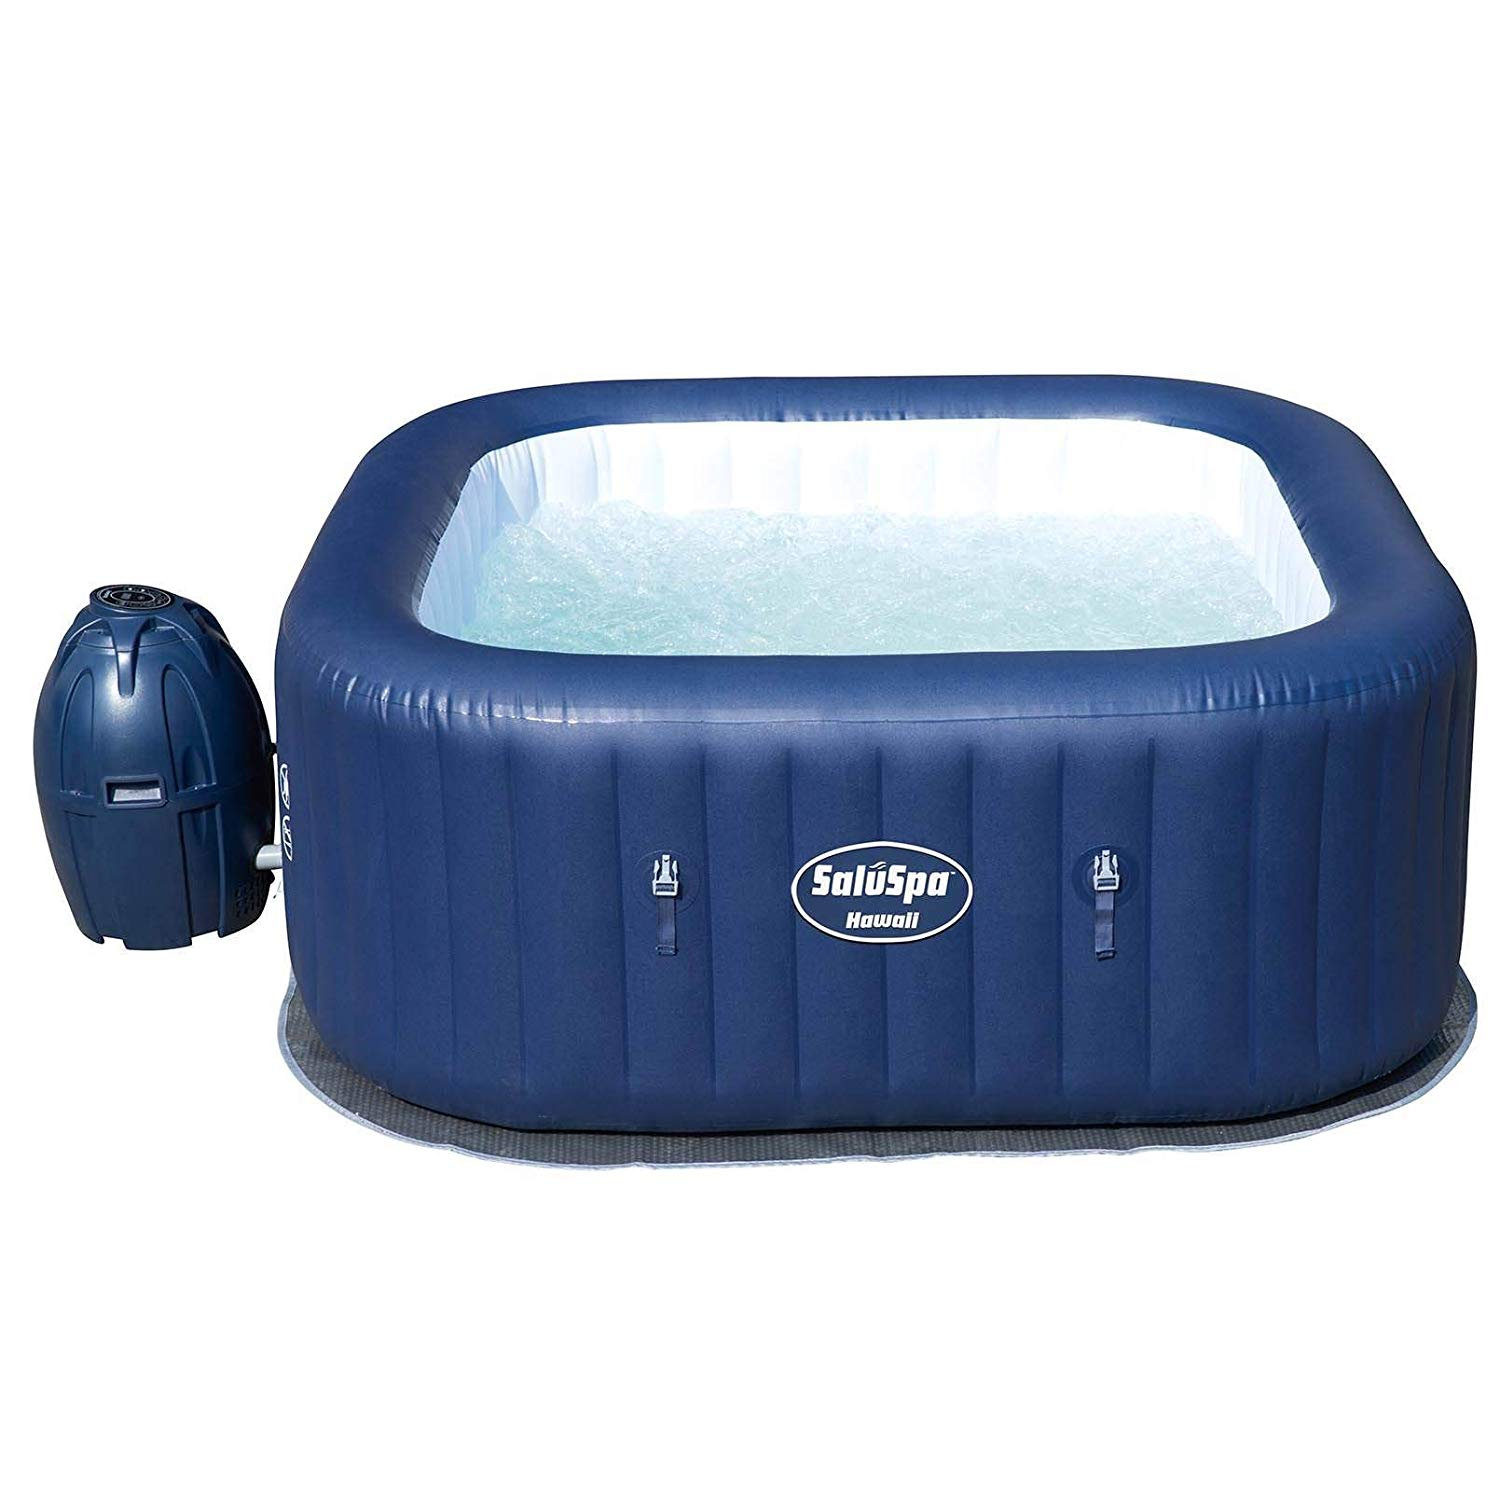 Bestway Hawaii Air Jet Hot Tub | 6 Person Inflatable Hot Tub